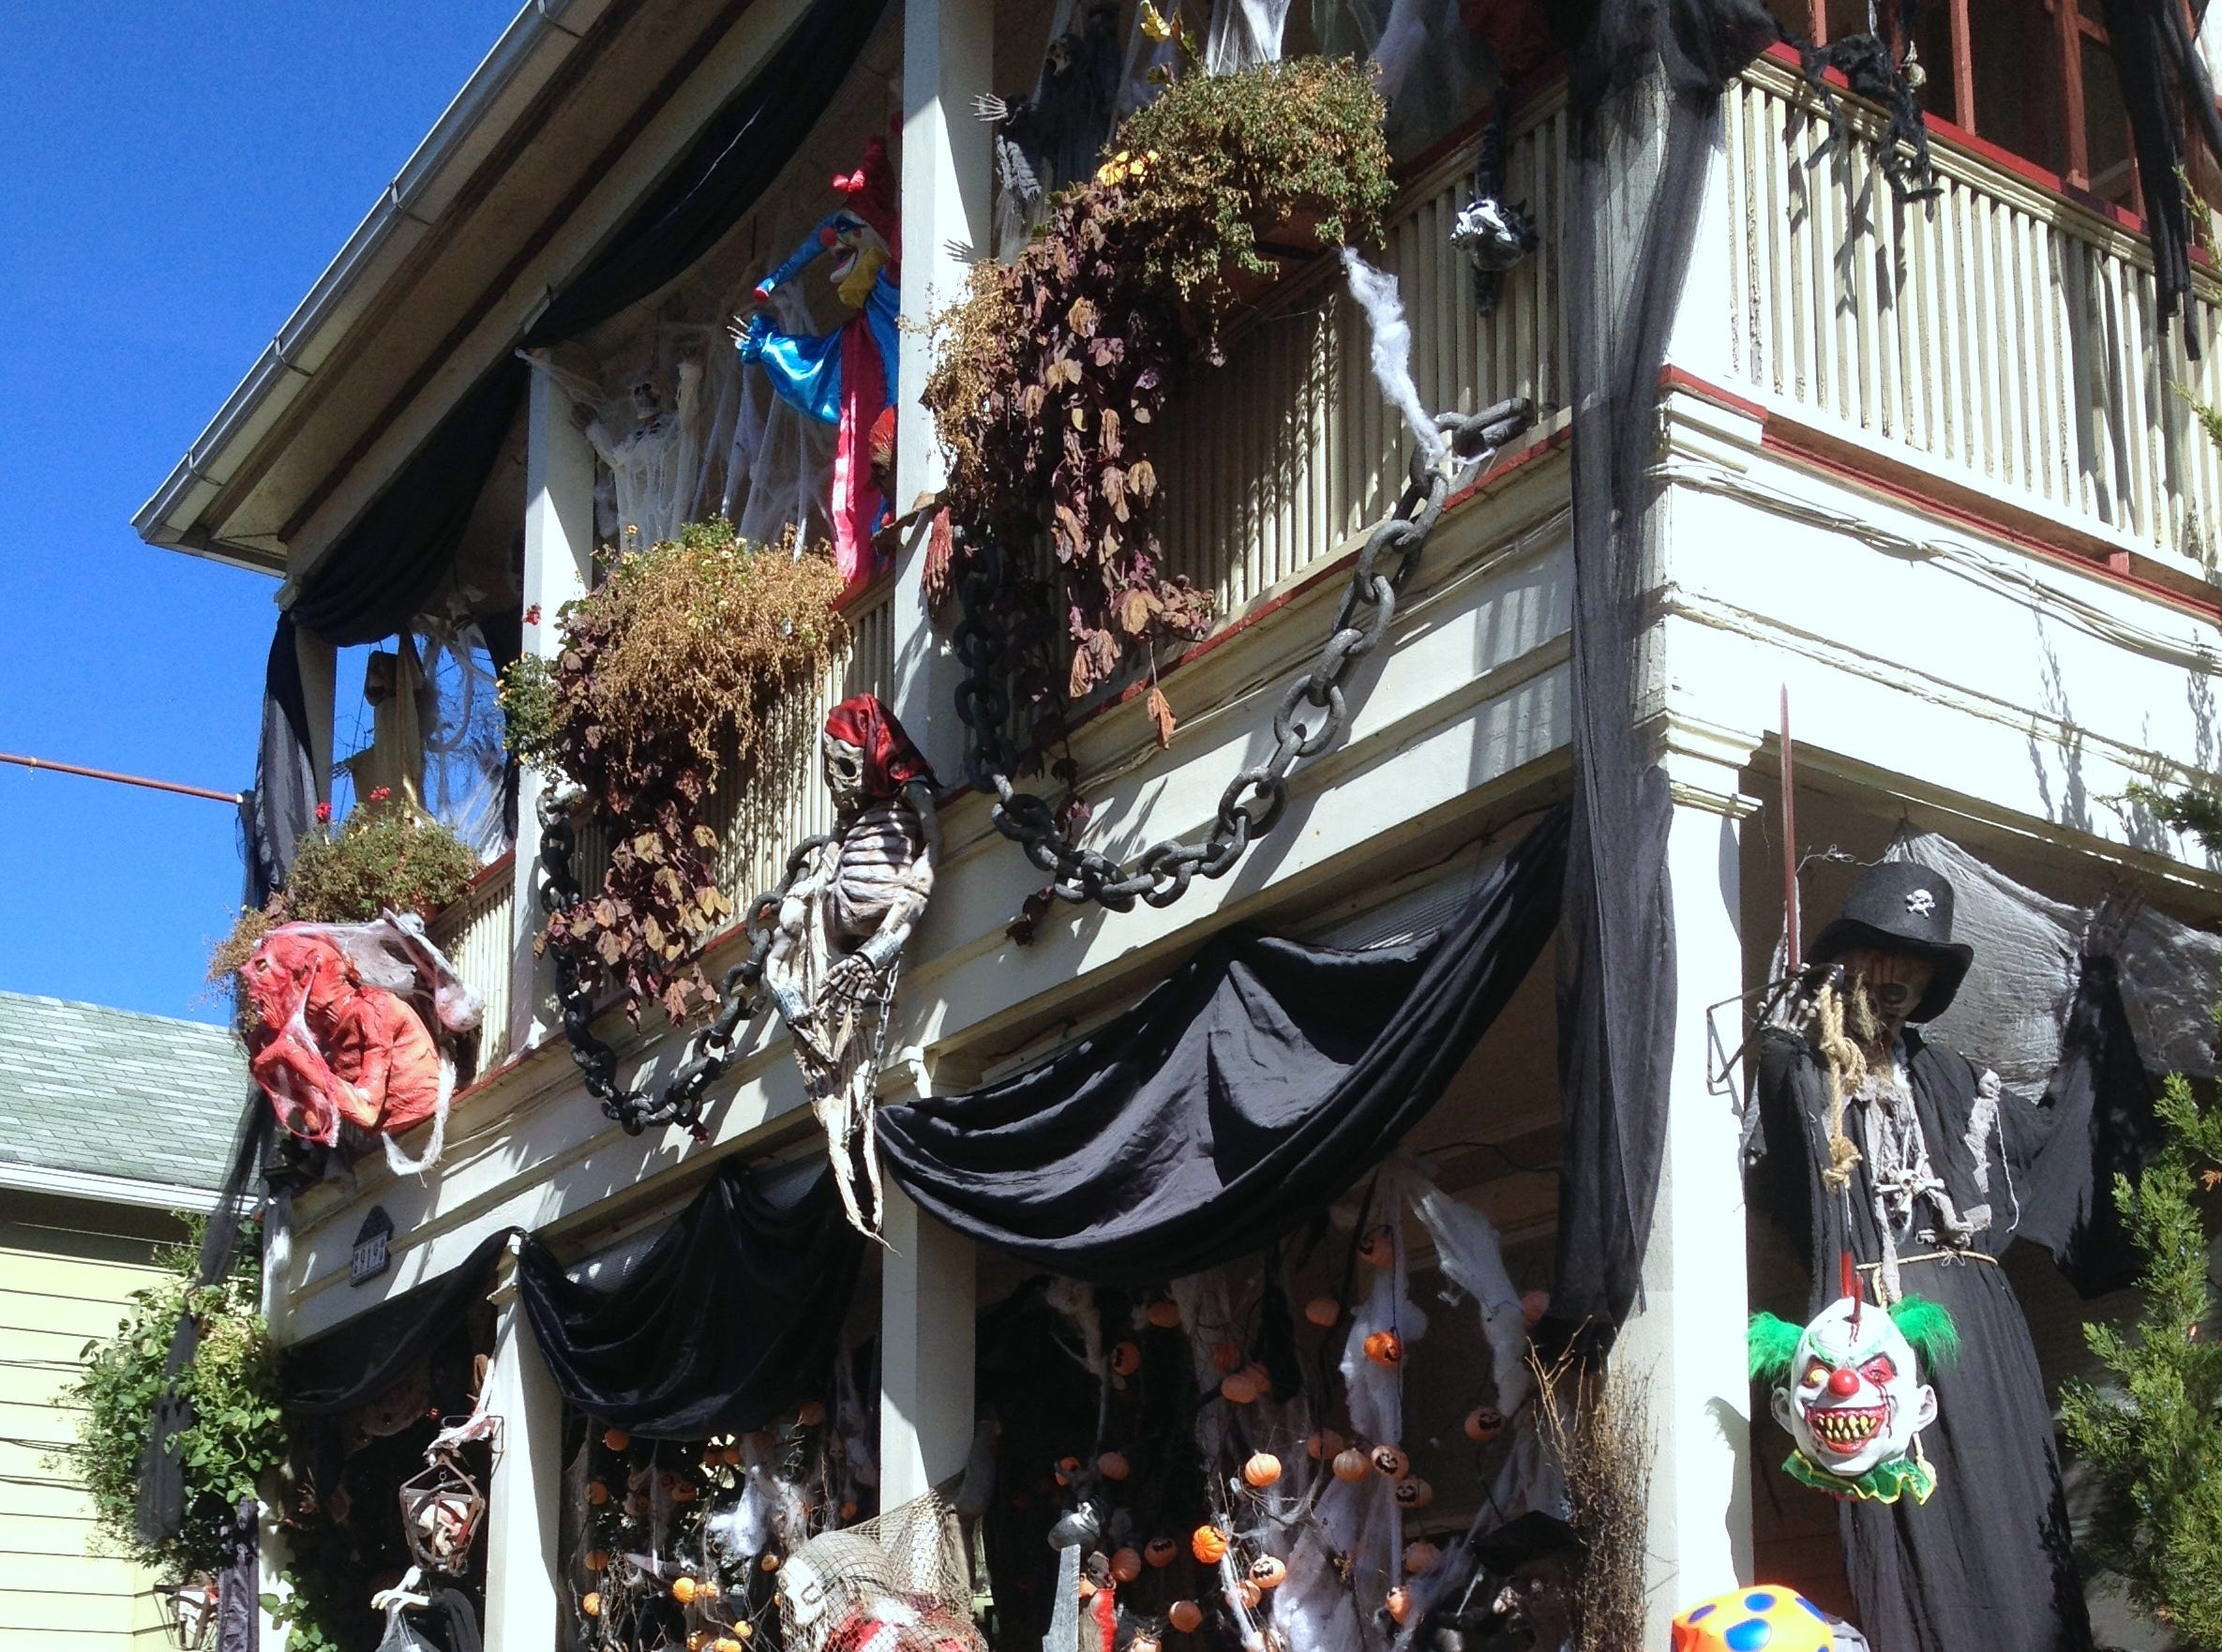 2015: Halloween decorations adorn a home on N. Tioga Street in Ithaca.